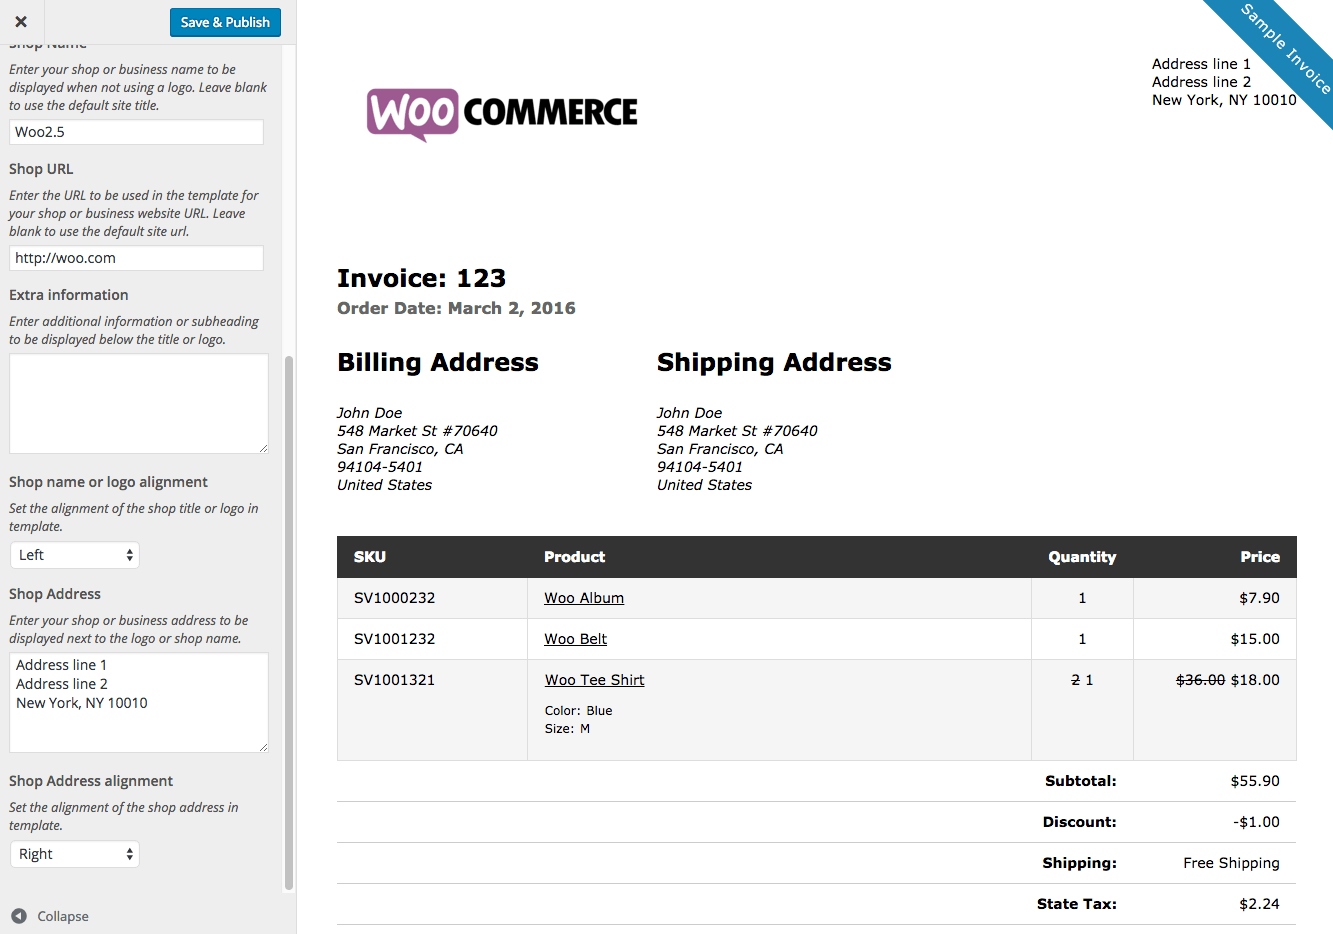 Sandiegolocksmithsus  Sweet Print Invoices Amp Packing Lists  Woocommerce With Hot Woocommerce Print Invoices  Packing Lists Customizer With Beautiful Php Invoice System Also Making An Invoice In Word In Addition How To Make An Invoice Uk And Parking Invoice As Well As Downloadable Invoice Templates Additionally Free Online Printable Invoices From Woocommercecom With Sandiegolocksmithsus  Hot Print Invoices Amp Packing Lists  Woocommerce With Beautiful Woocommerce Print Invoices  Packing Lists Customizer And Sweet Php Invoice System Also Making An Invoice In Word In Addition How To Make An Invoice Uk From Woocommercecom